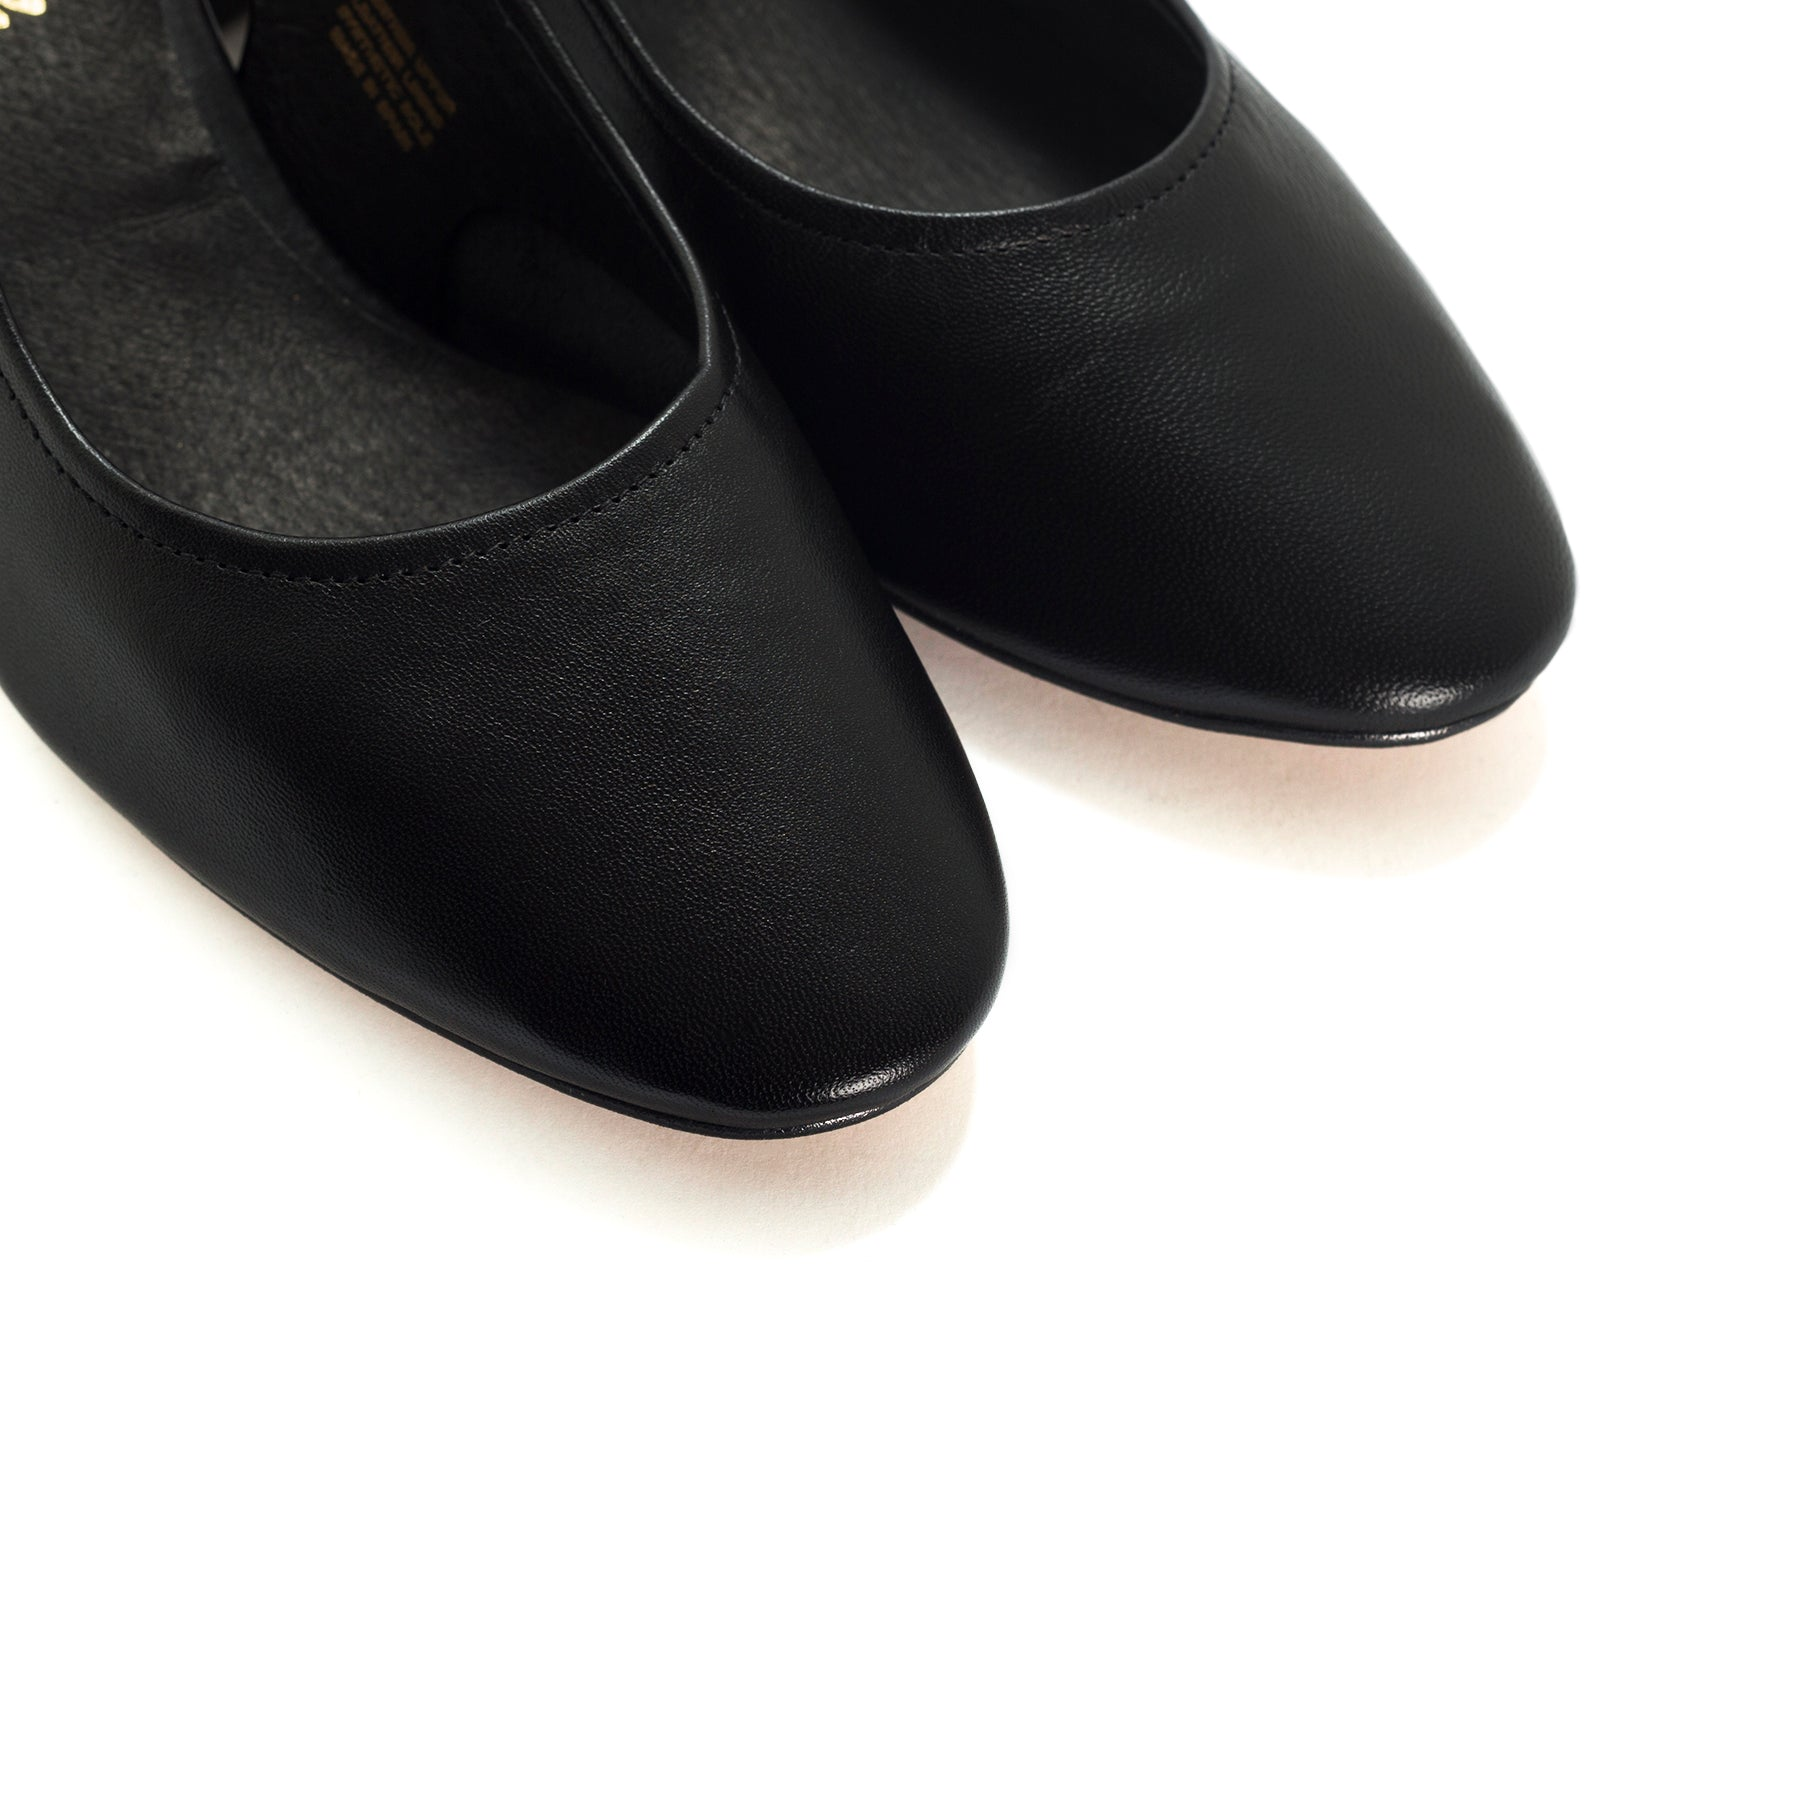 Juros Black Leather Pumps